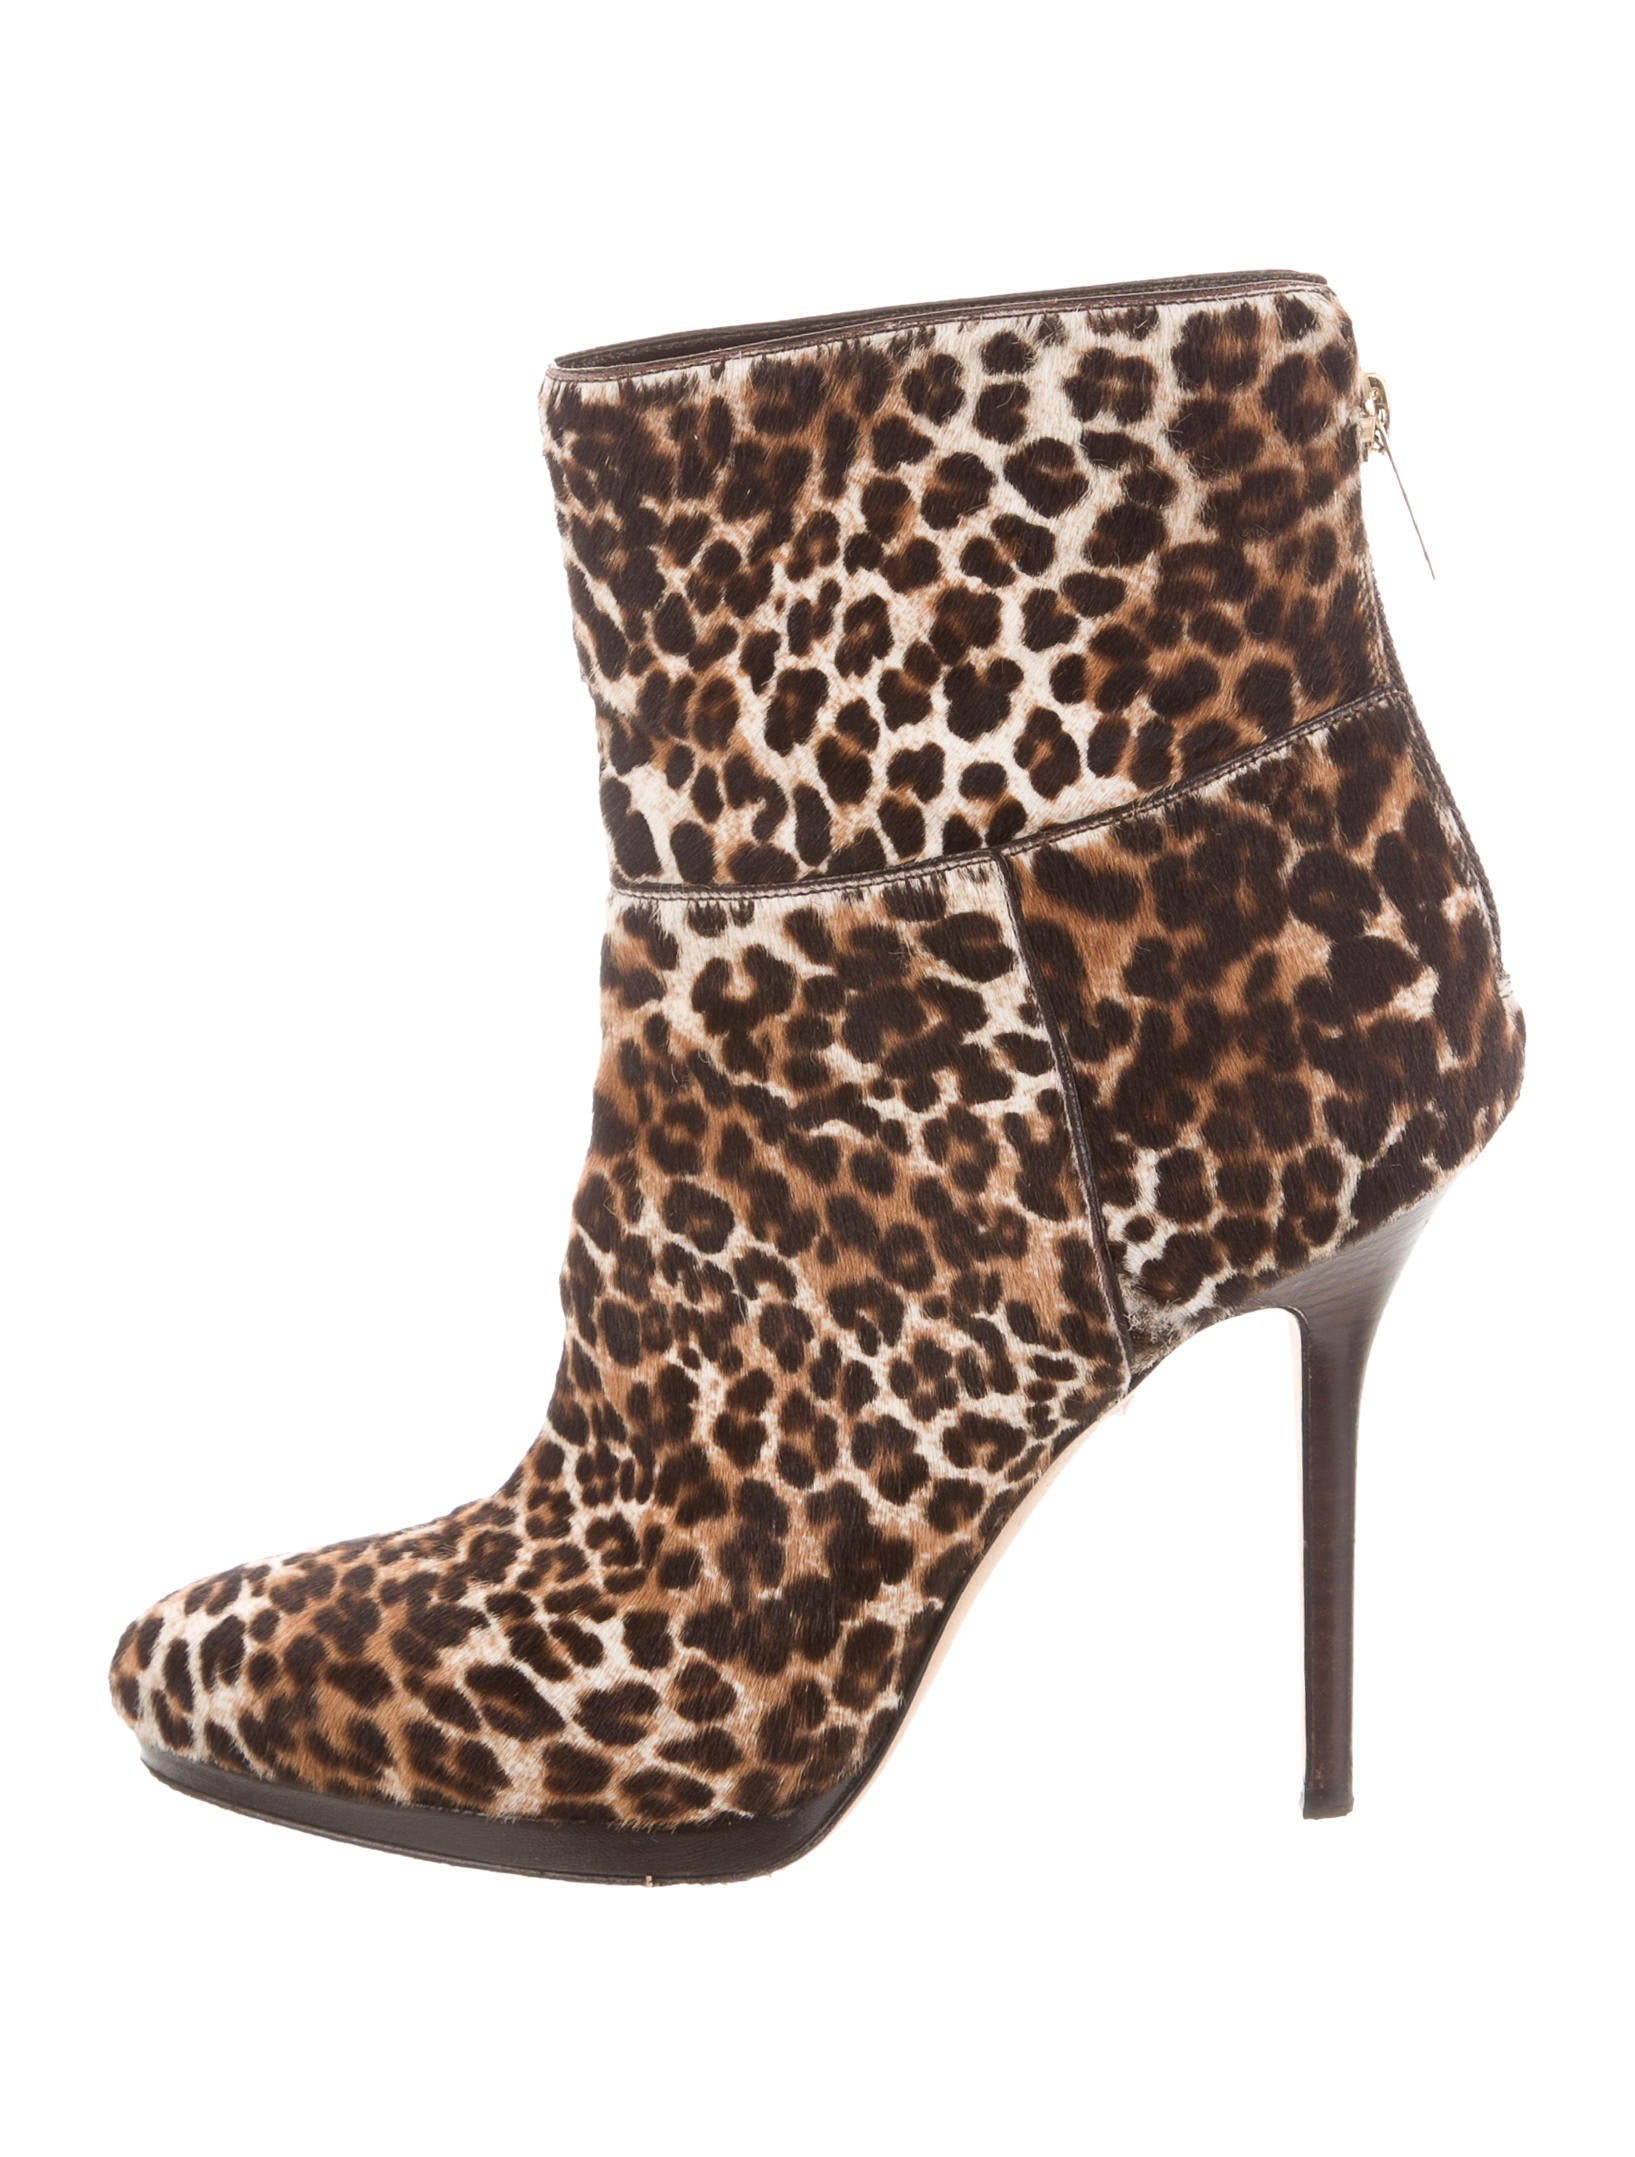 Jimmy Choo Ponyhair-Trimmed Ankle Boots footlocker online for sale under $60 collections cheap online sale newest 1fW6dS